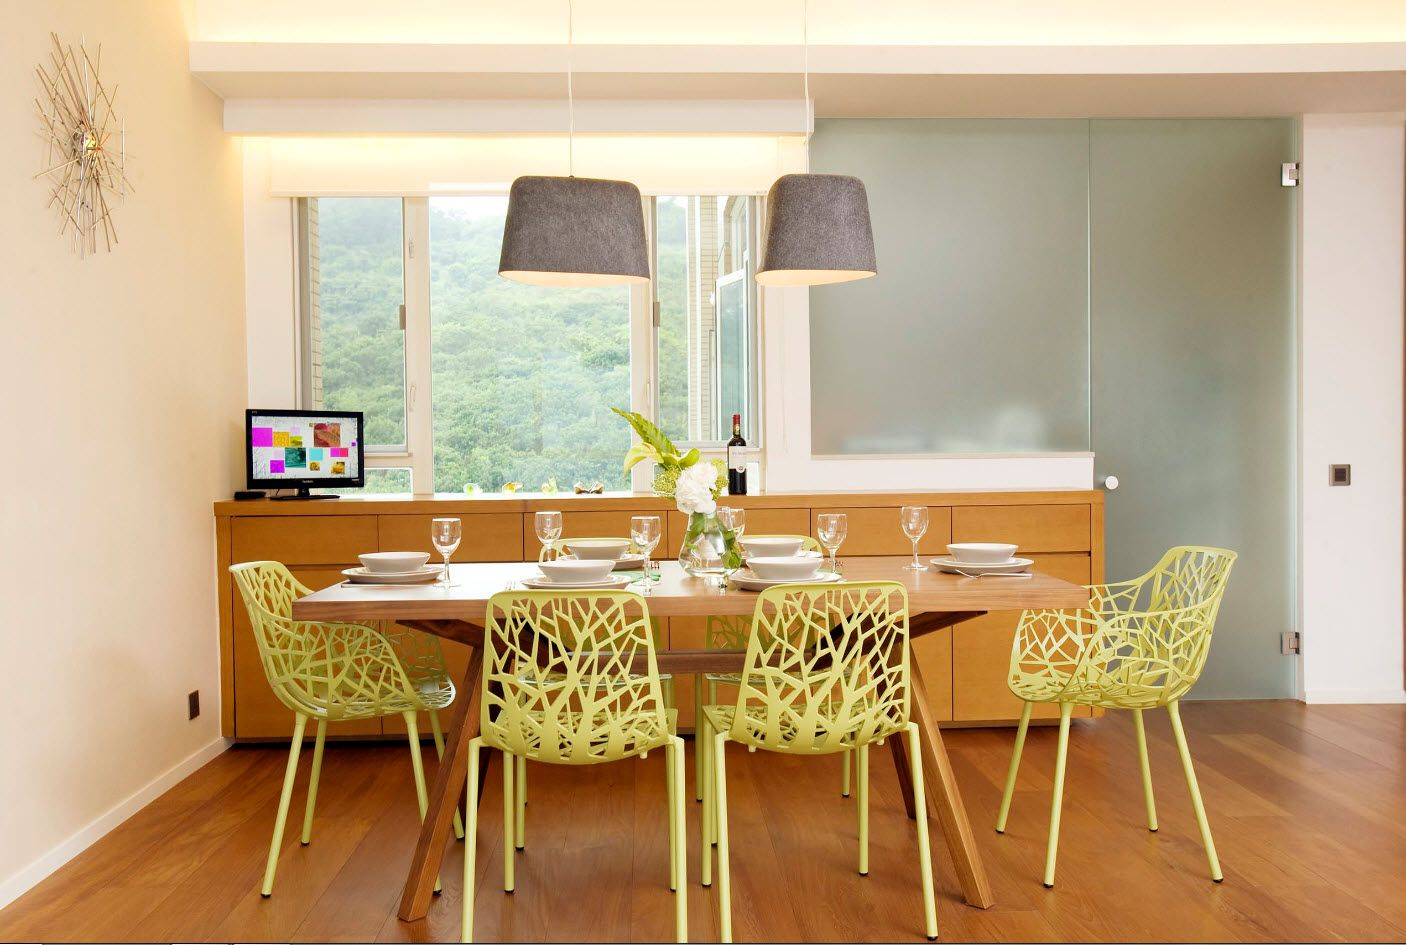 Dining Zone Table and Chairs: Practical and Aesthetic Composition. Wrought green chairs are aliens to overall atmosphere